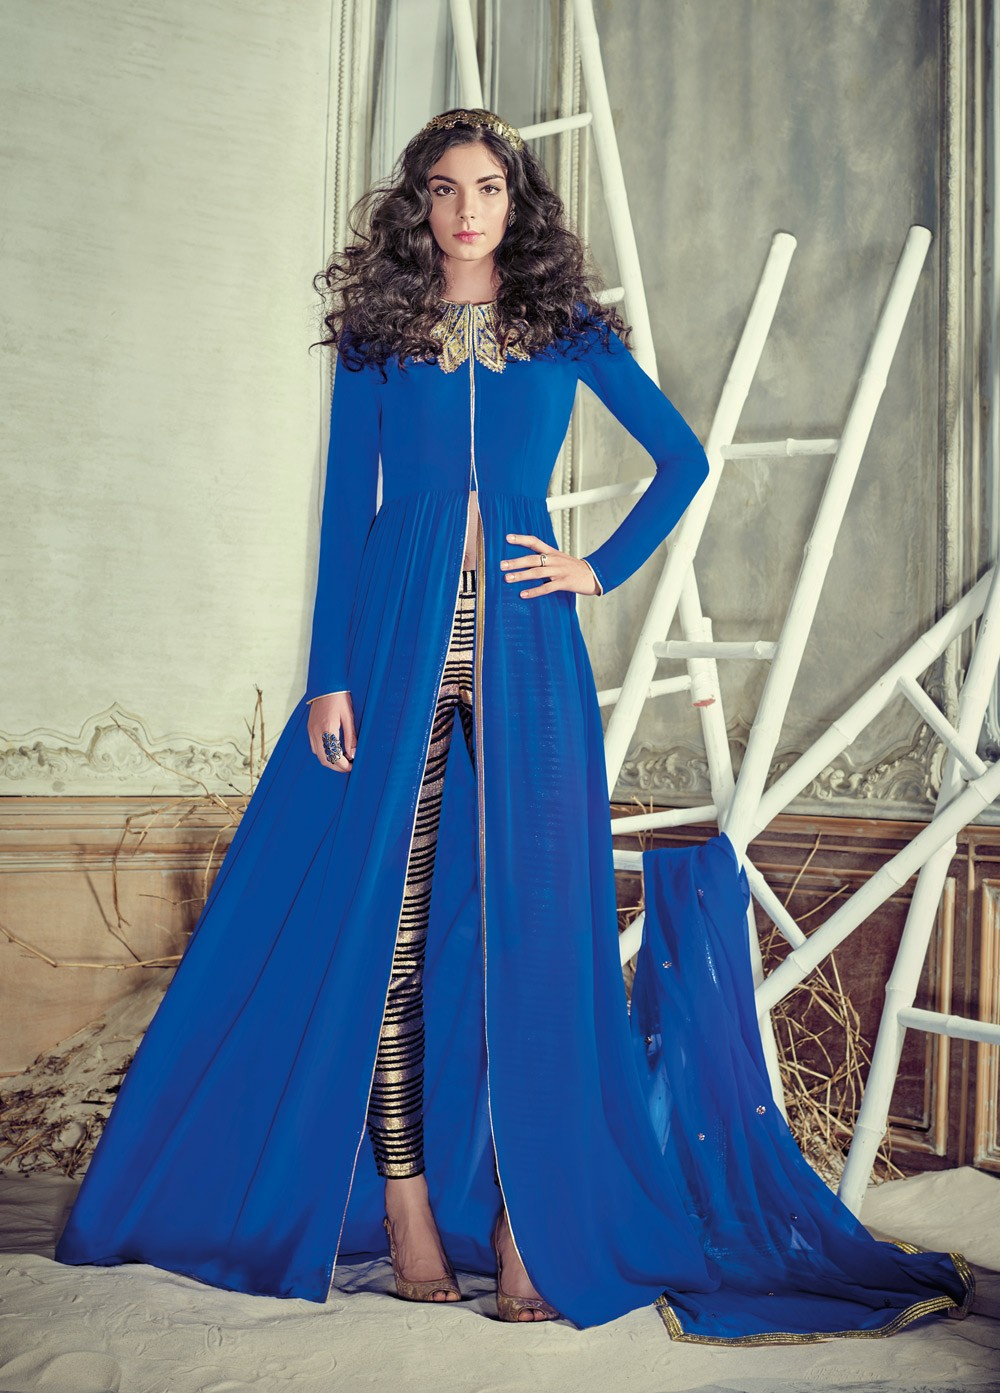 c0dbcc62c3 Buy Stunning blue color georgette pant style party wear salwar ...